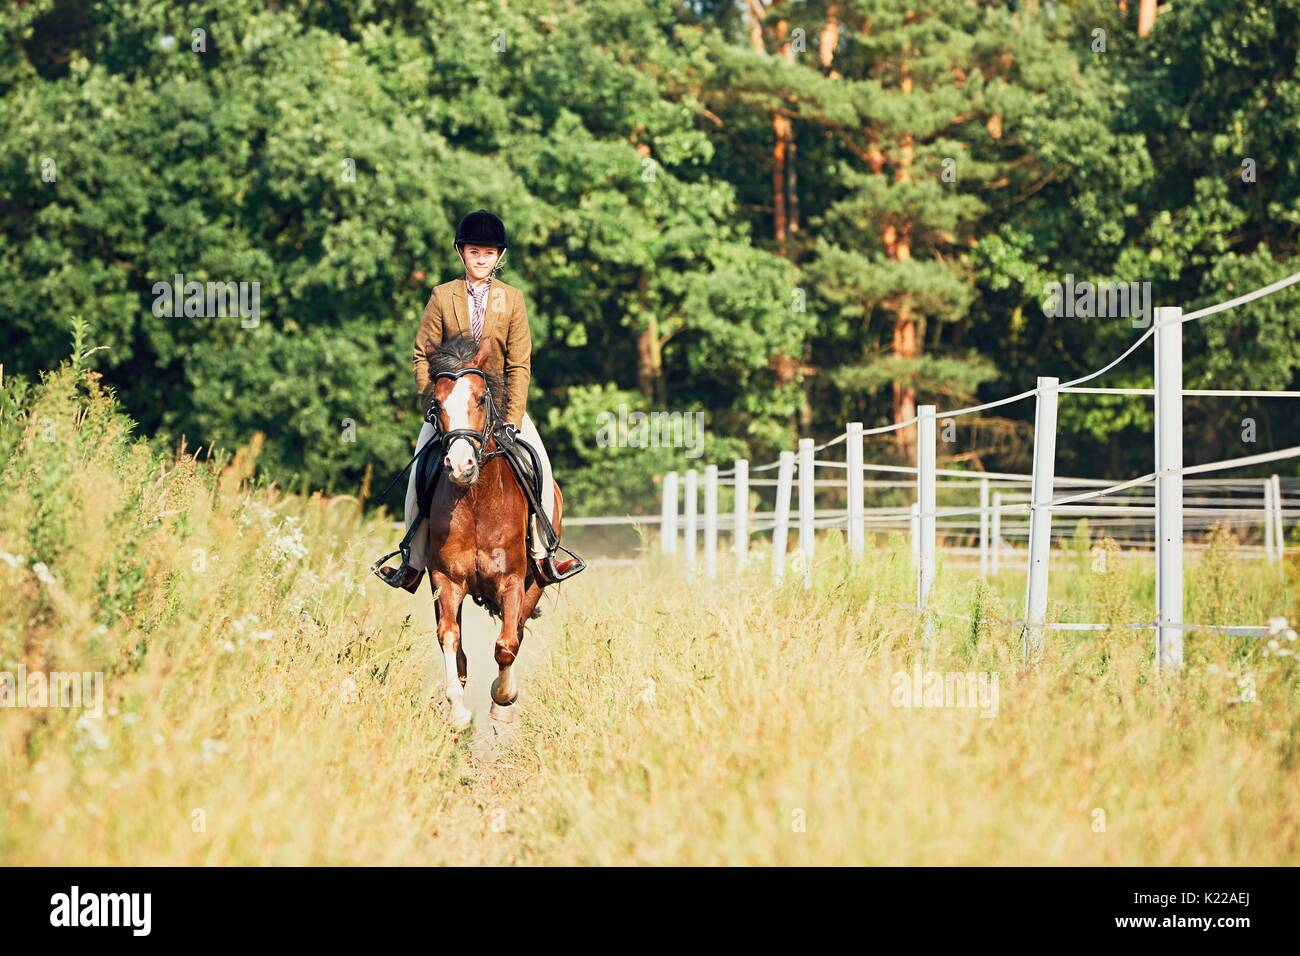 Teenage girl in formal wear riding a horse in nature. - Stock Image